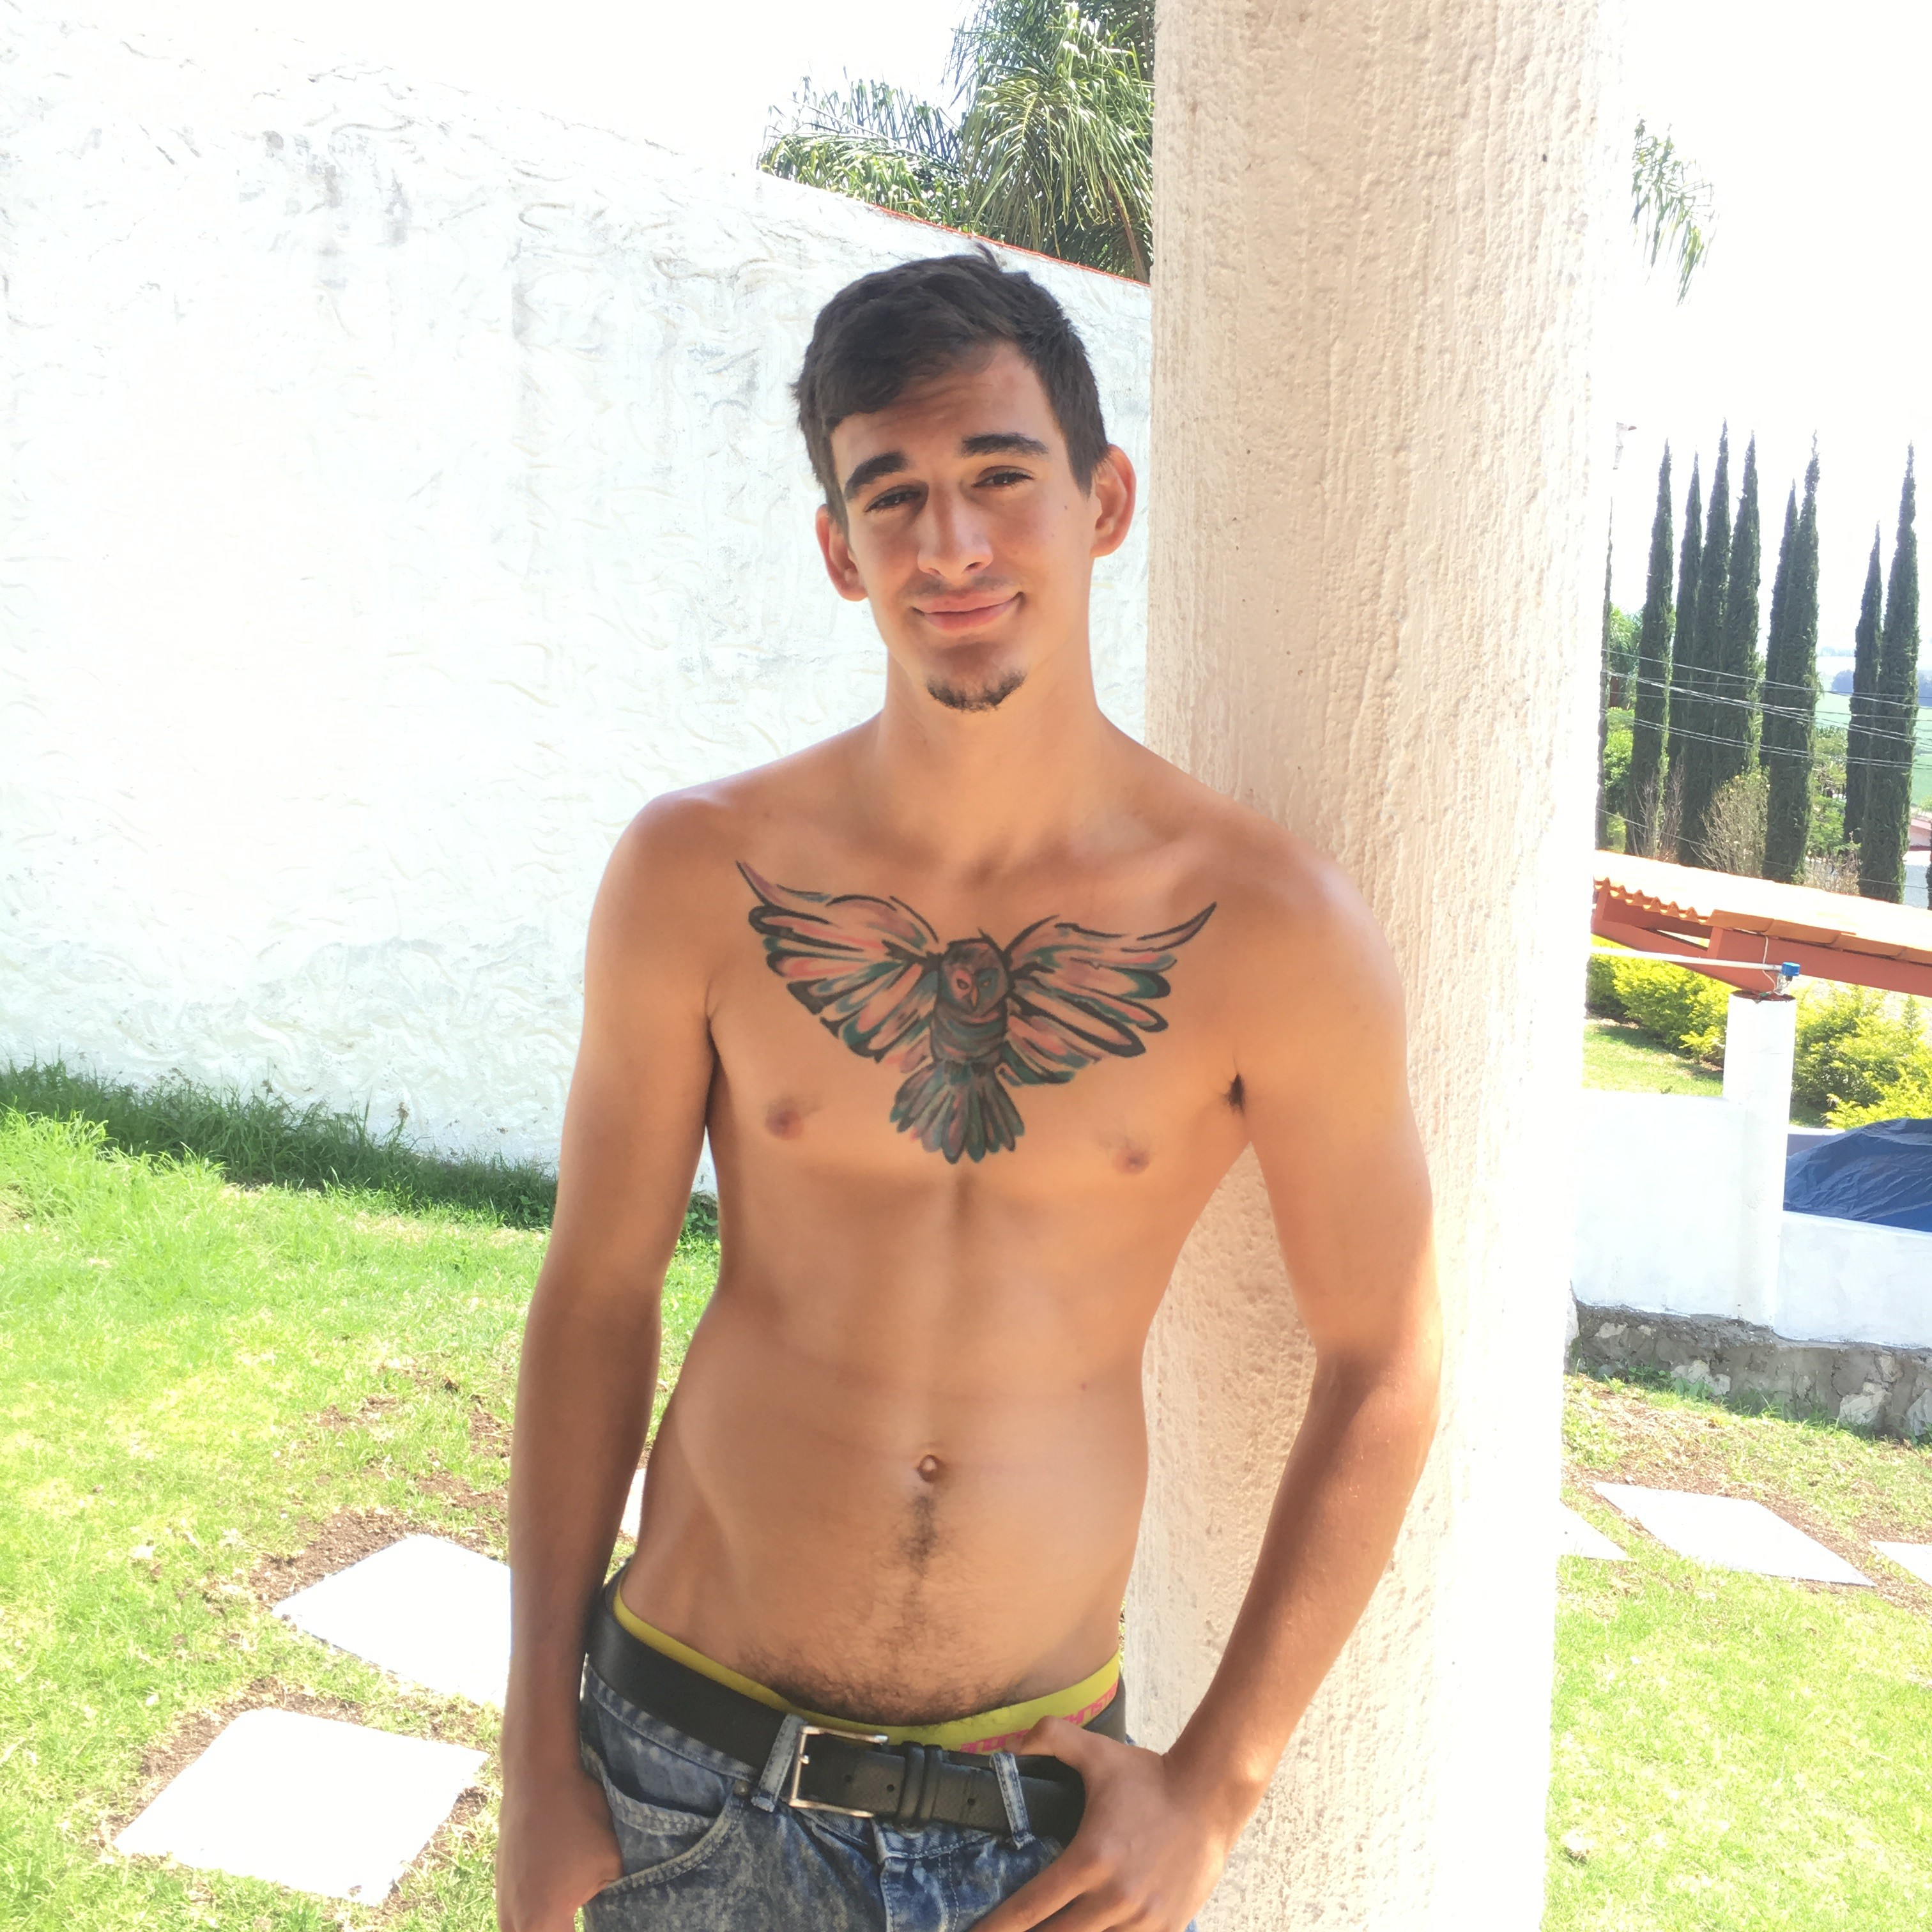 Cam4 Spain cam4 performer interview with: heychrist1ian